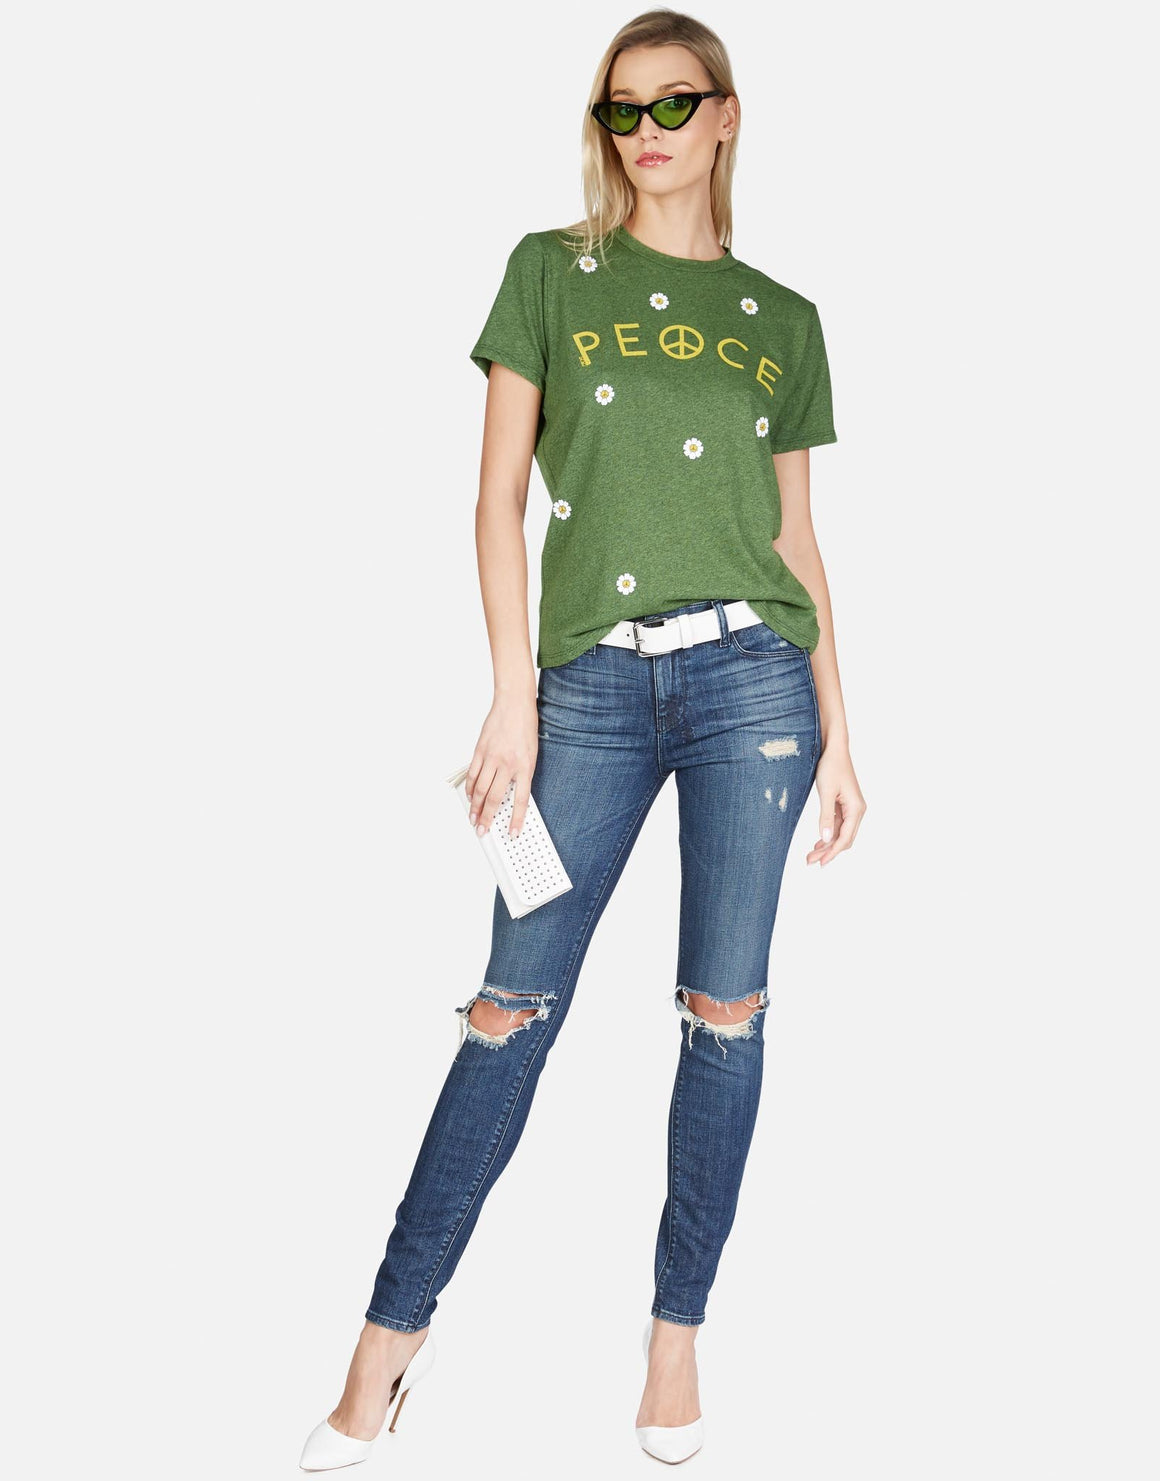 Peace Printed Green Graphic T-Shirt With Polka-Dots